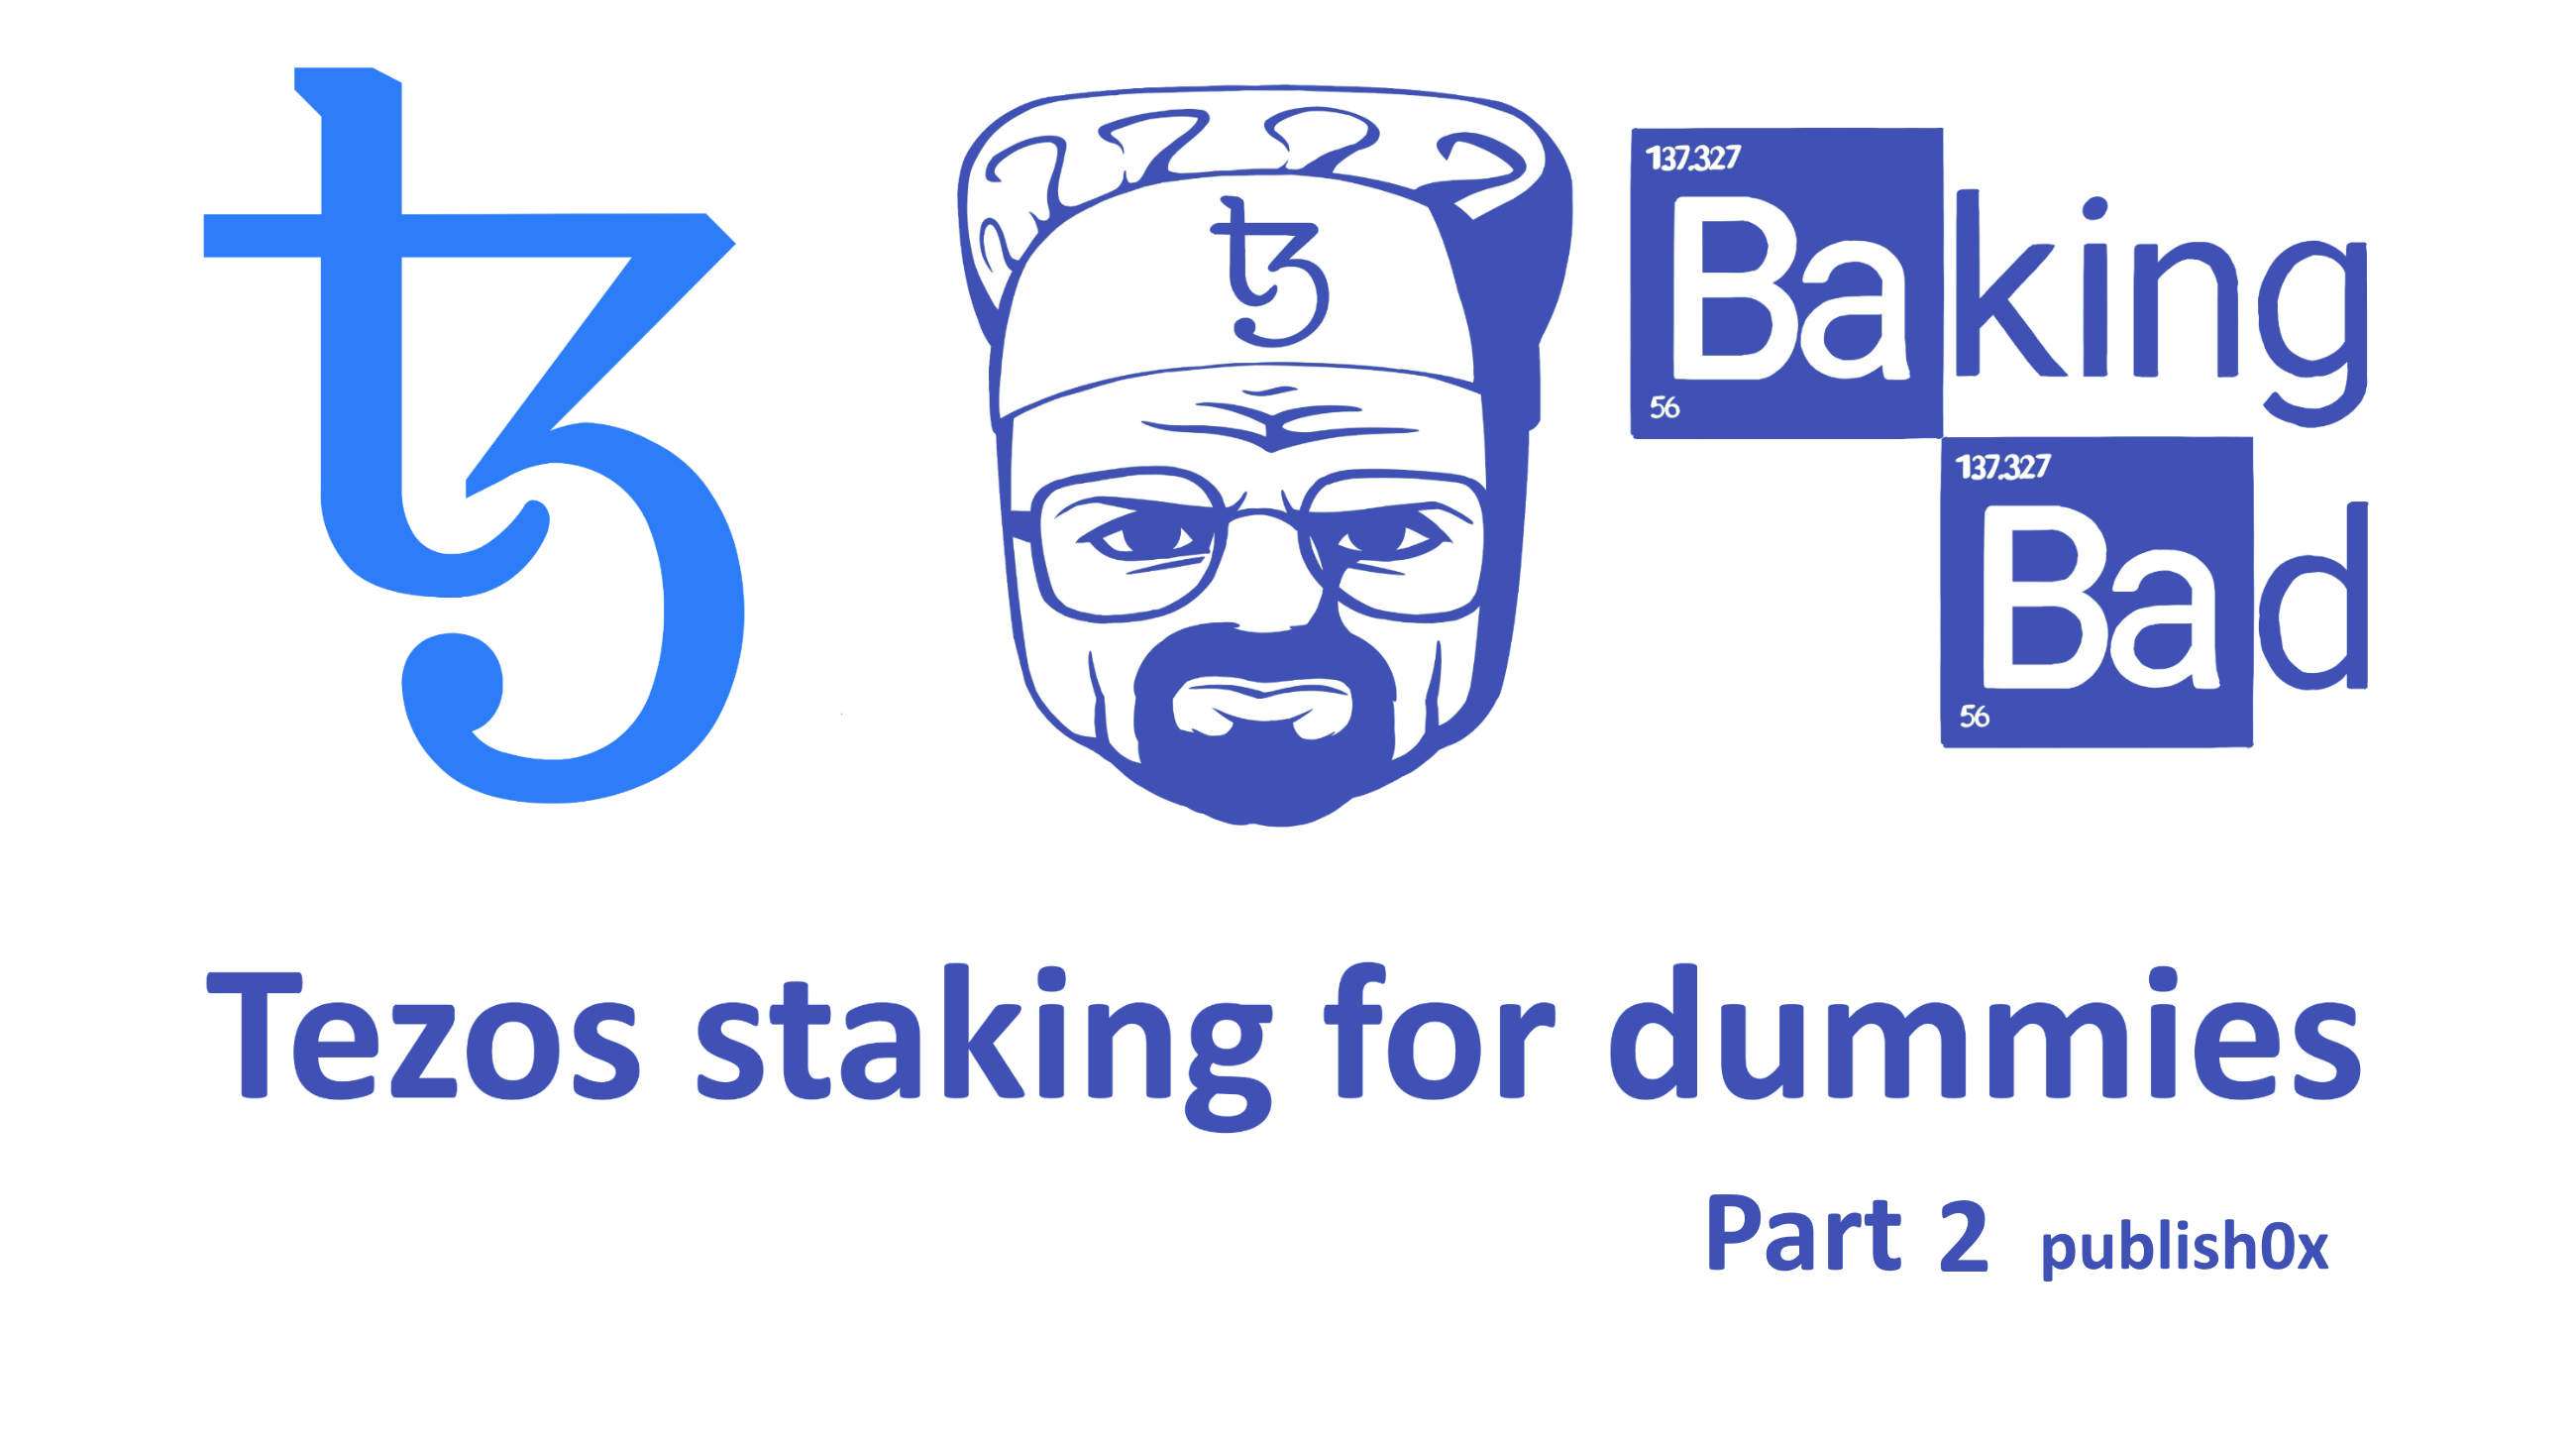 Staking for dummies part 2